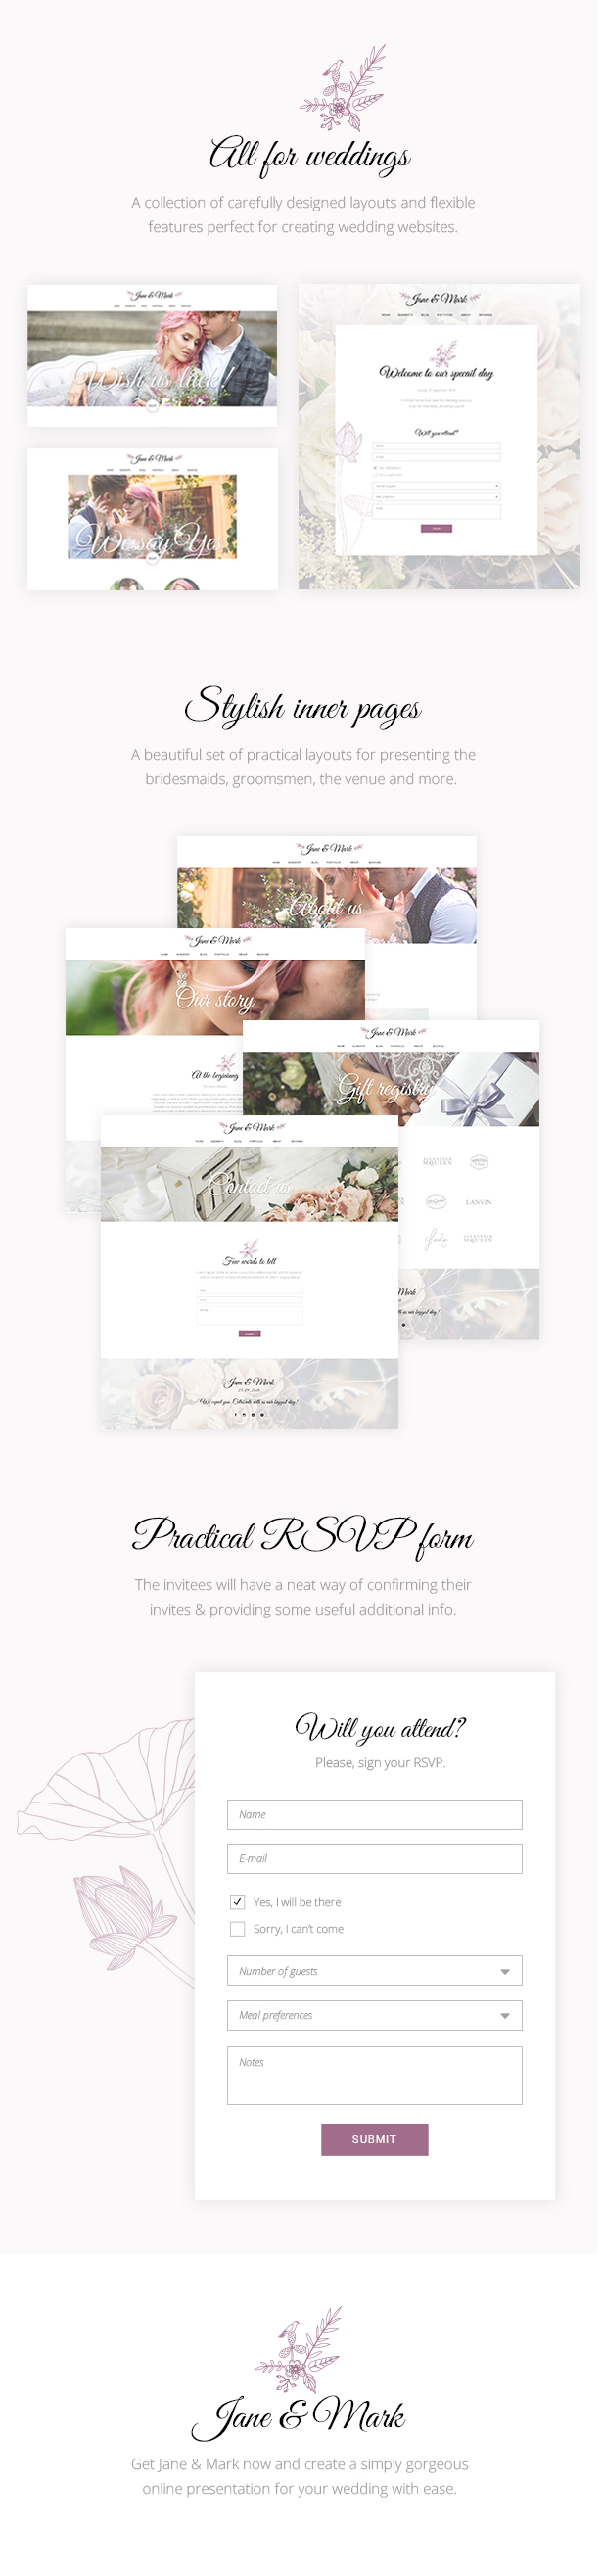 WordPress theme Jane & Mark - A Stylish Theme for Weddings and Celebrations (Wedding)